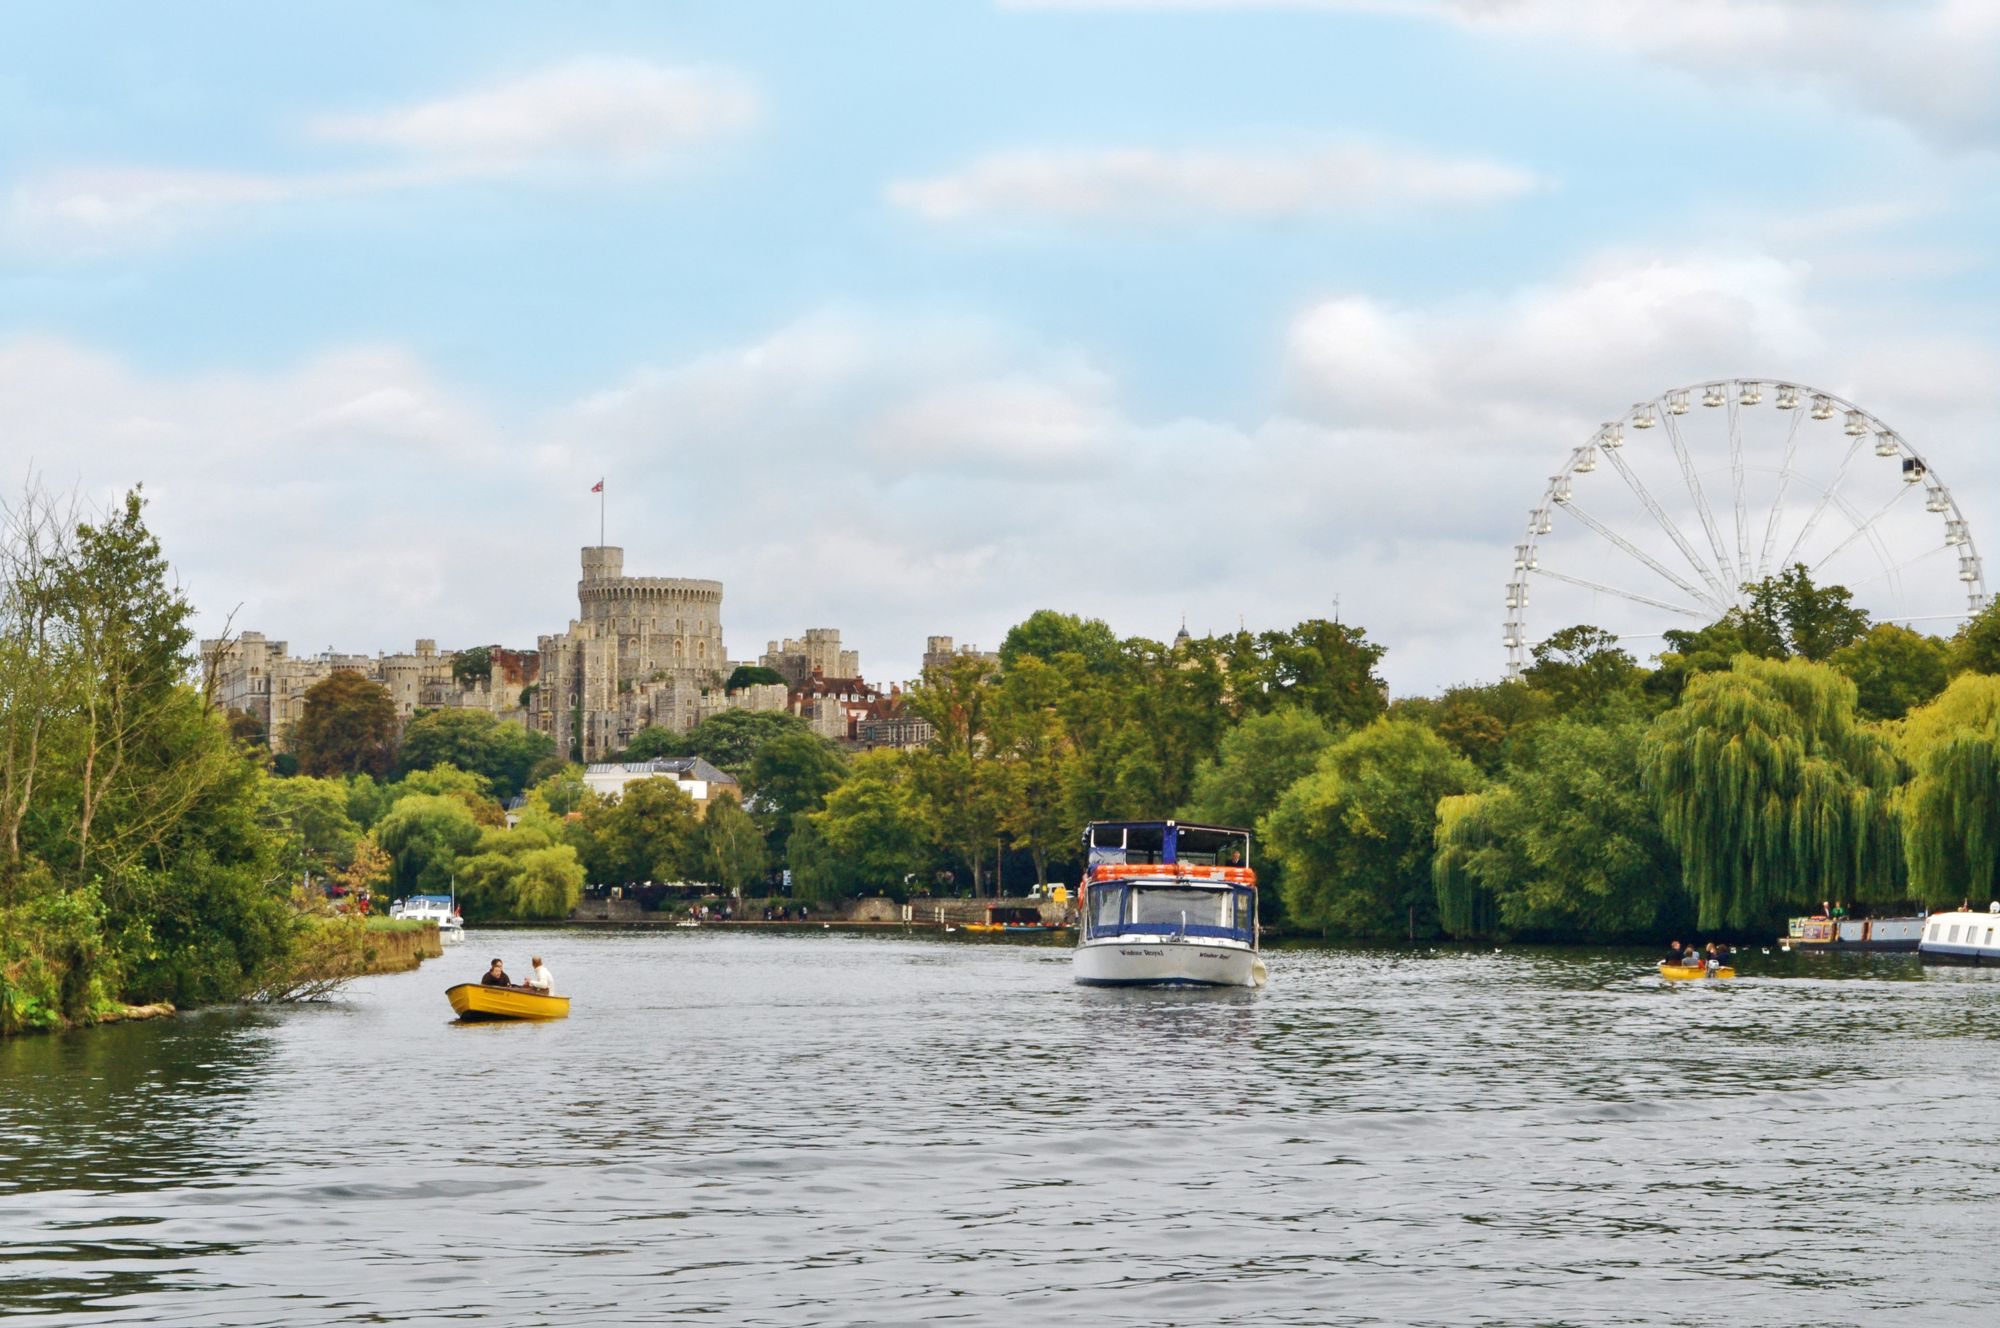 Hotels, B&Bs & Self-Catering in Windsor - Cool Places to Stay in the UK